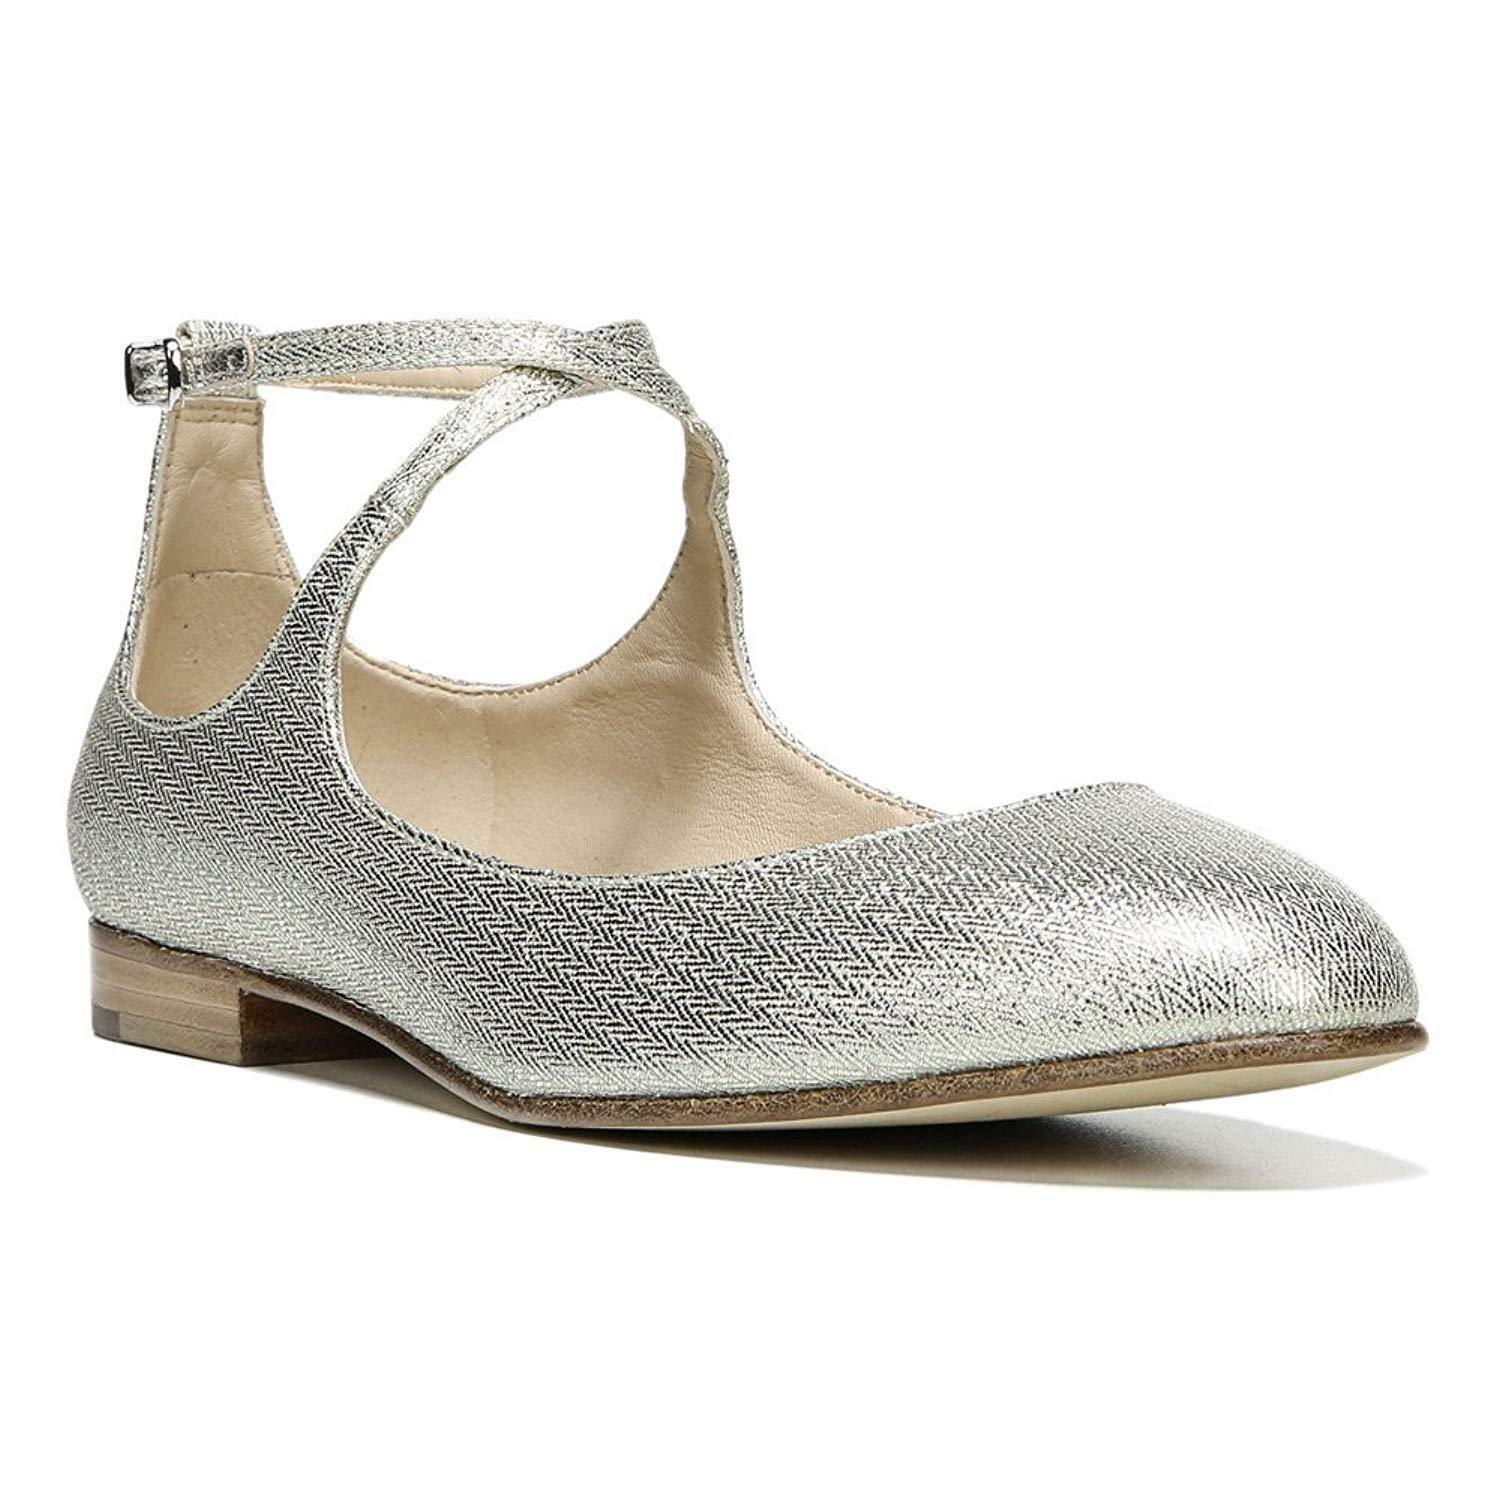 in vendita Via Spiga donna Yovela Ballet Flat-New With With With Defect (Platinum, 7.5)  presa